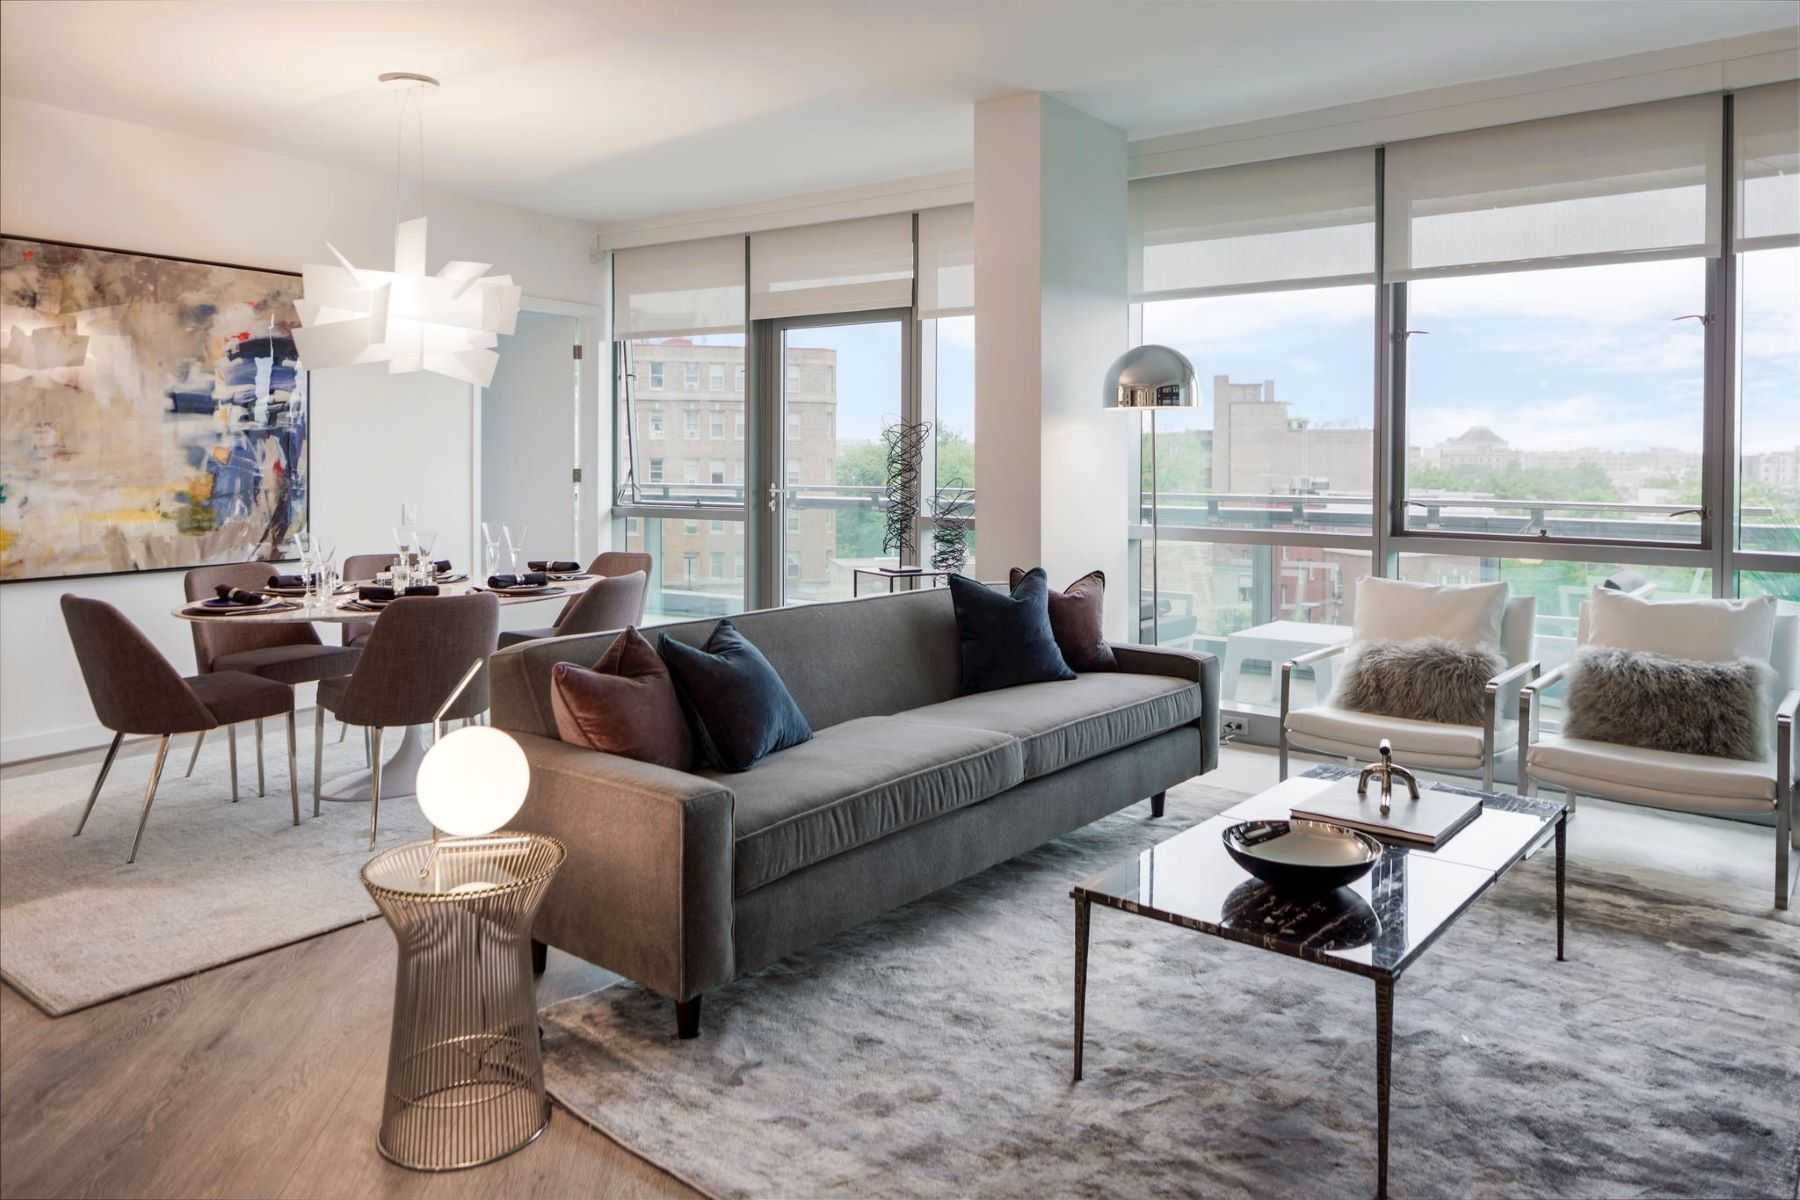 Apartment for Rent at 1901 Connecticut Ave Nw #719 1901 Connecticut Ave Nw #719 Washington, District Of Columbia 20009 United States